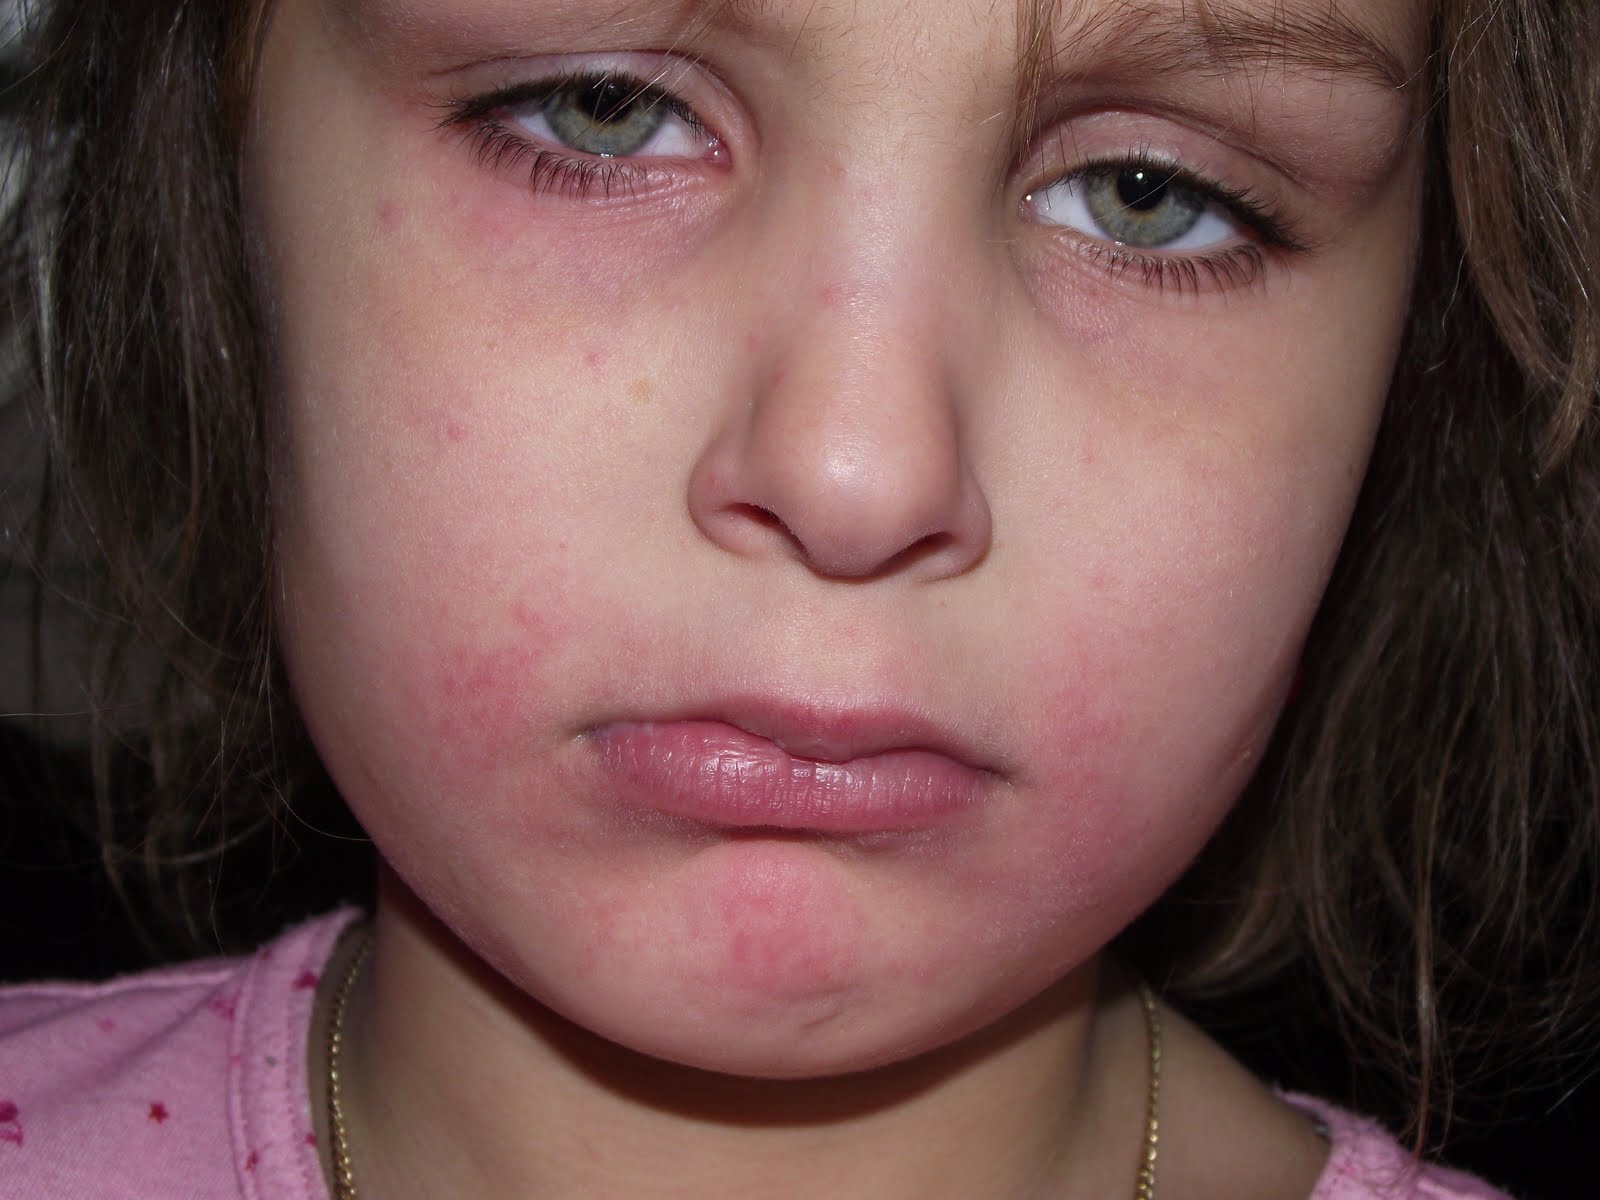 Anaphylaxis - Would you know what to do?